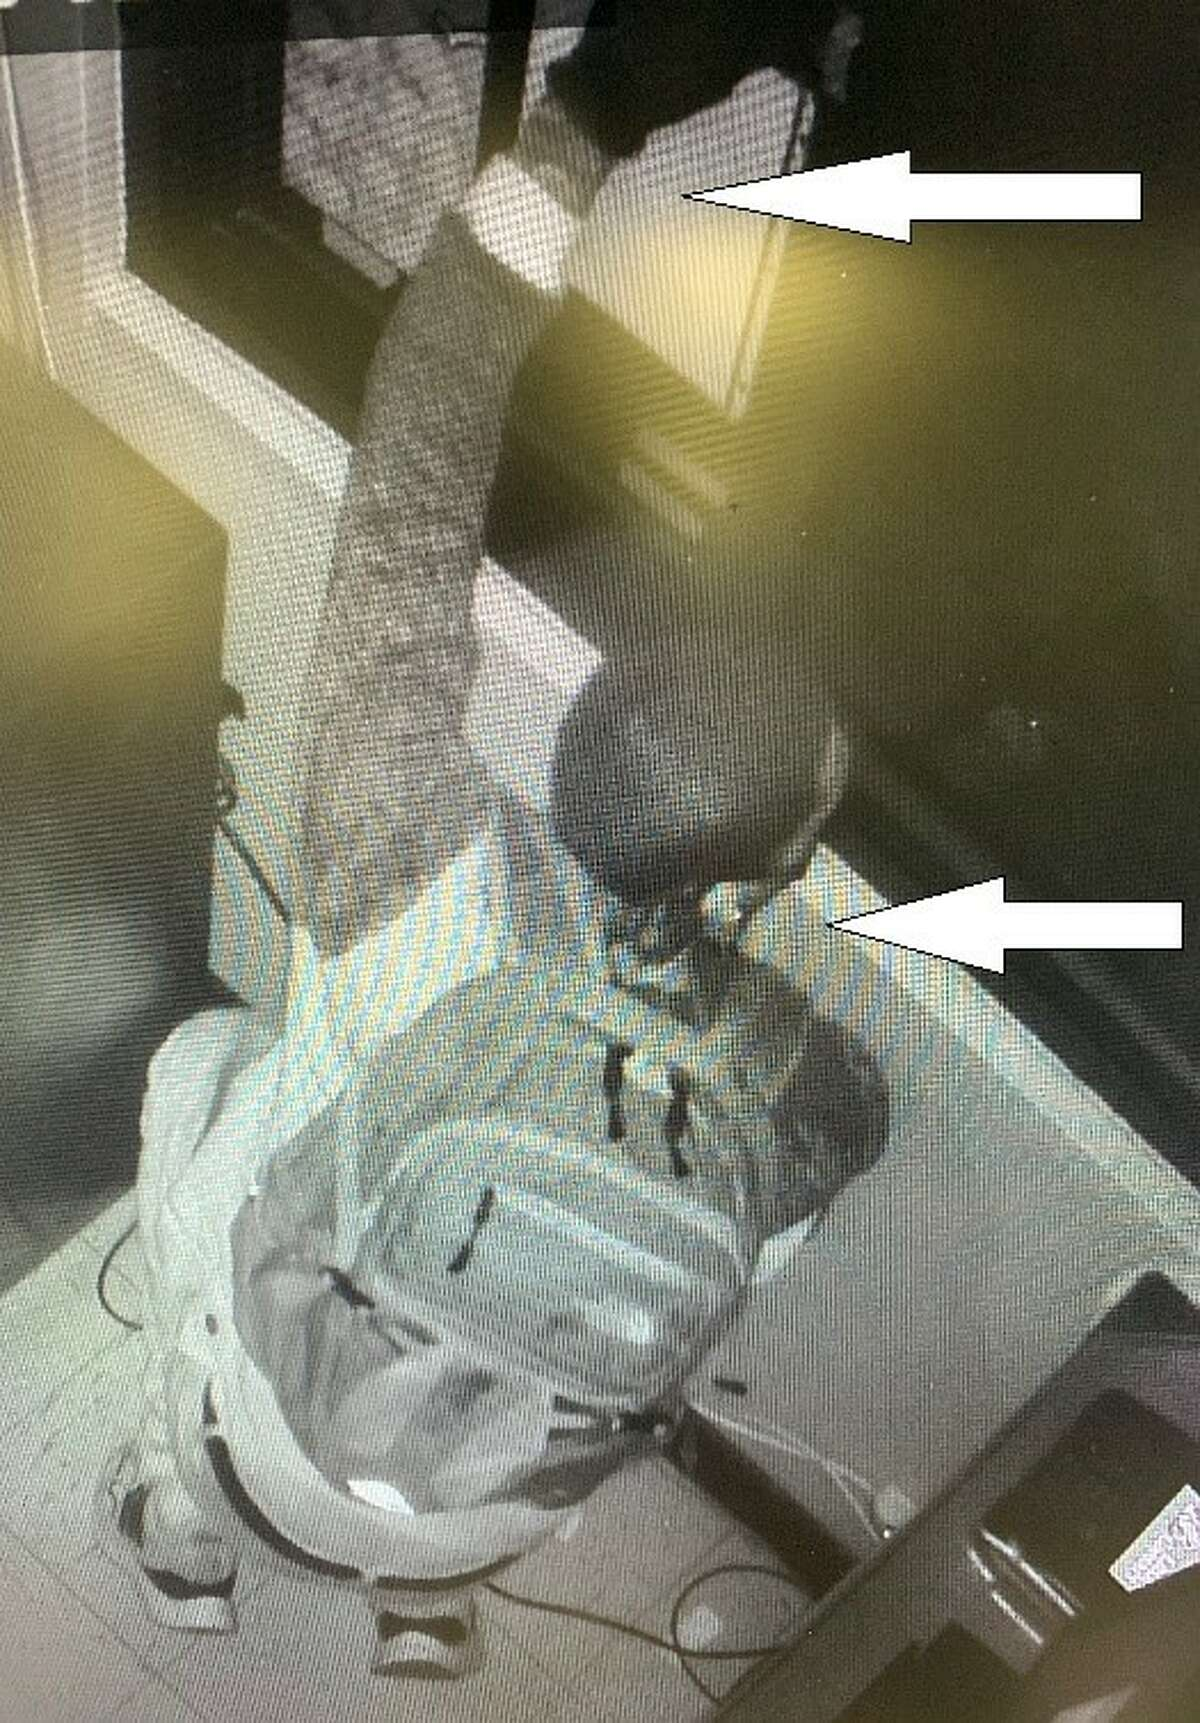 San Antonio police are asking for the public's help in identifying two men who they say broke into a North Side pizza joint.